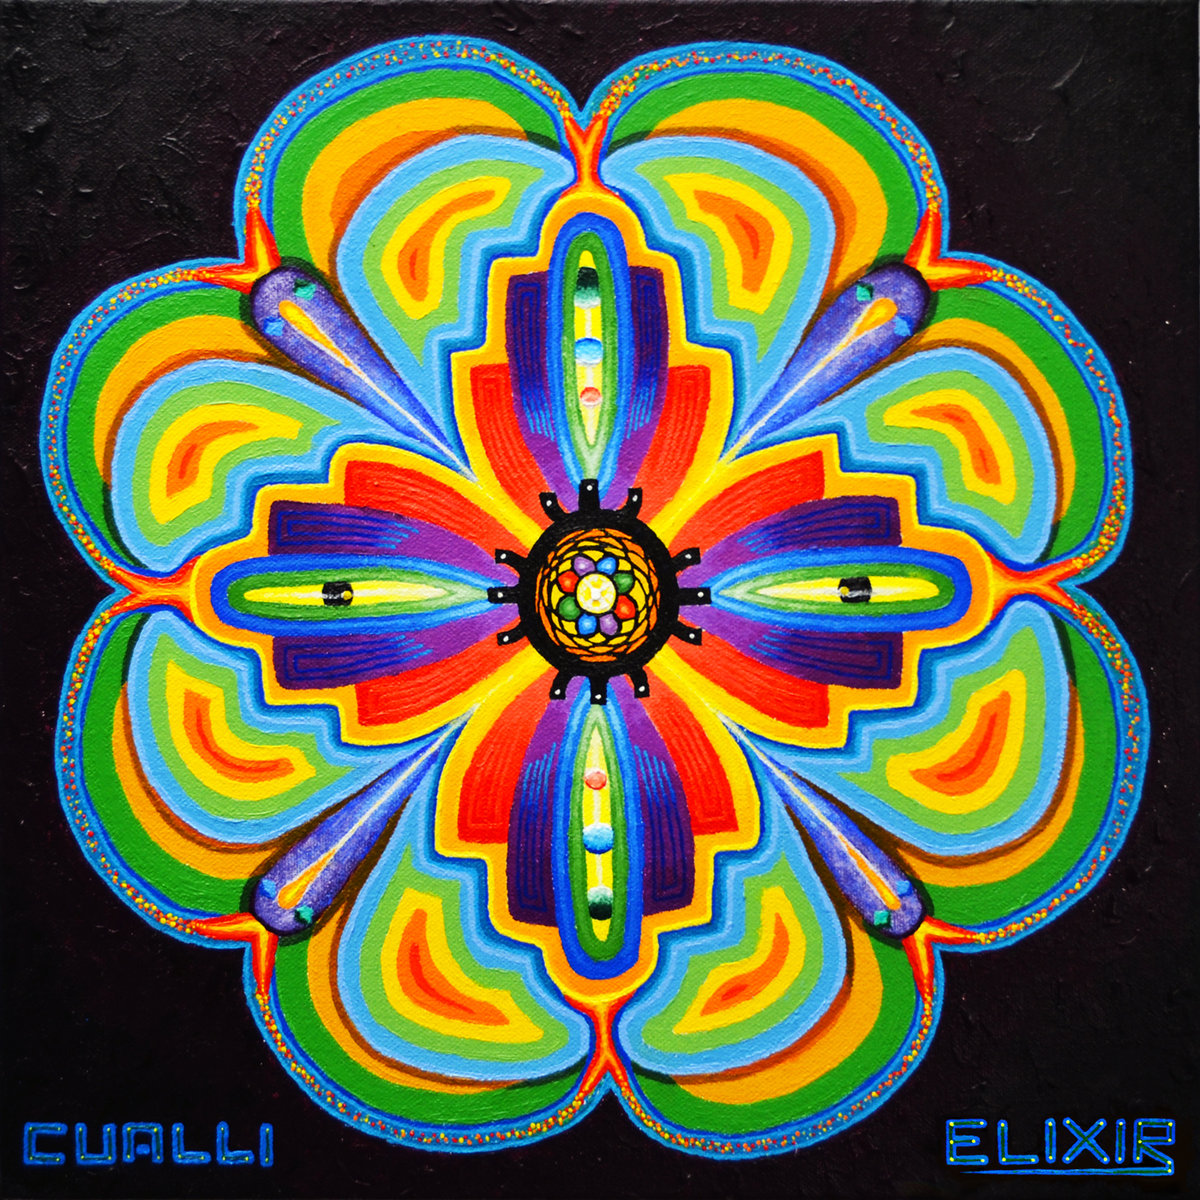 Cualli - Jungle Love @ 'Elixir' album (bass, electronic)